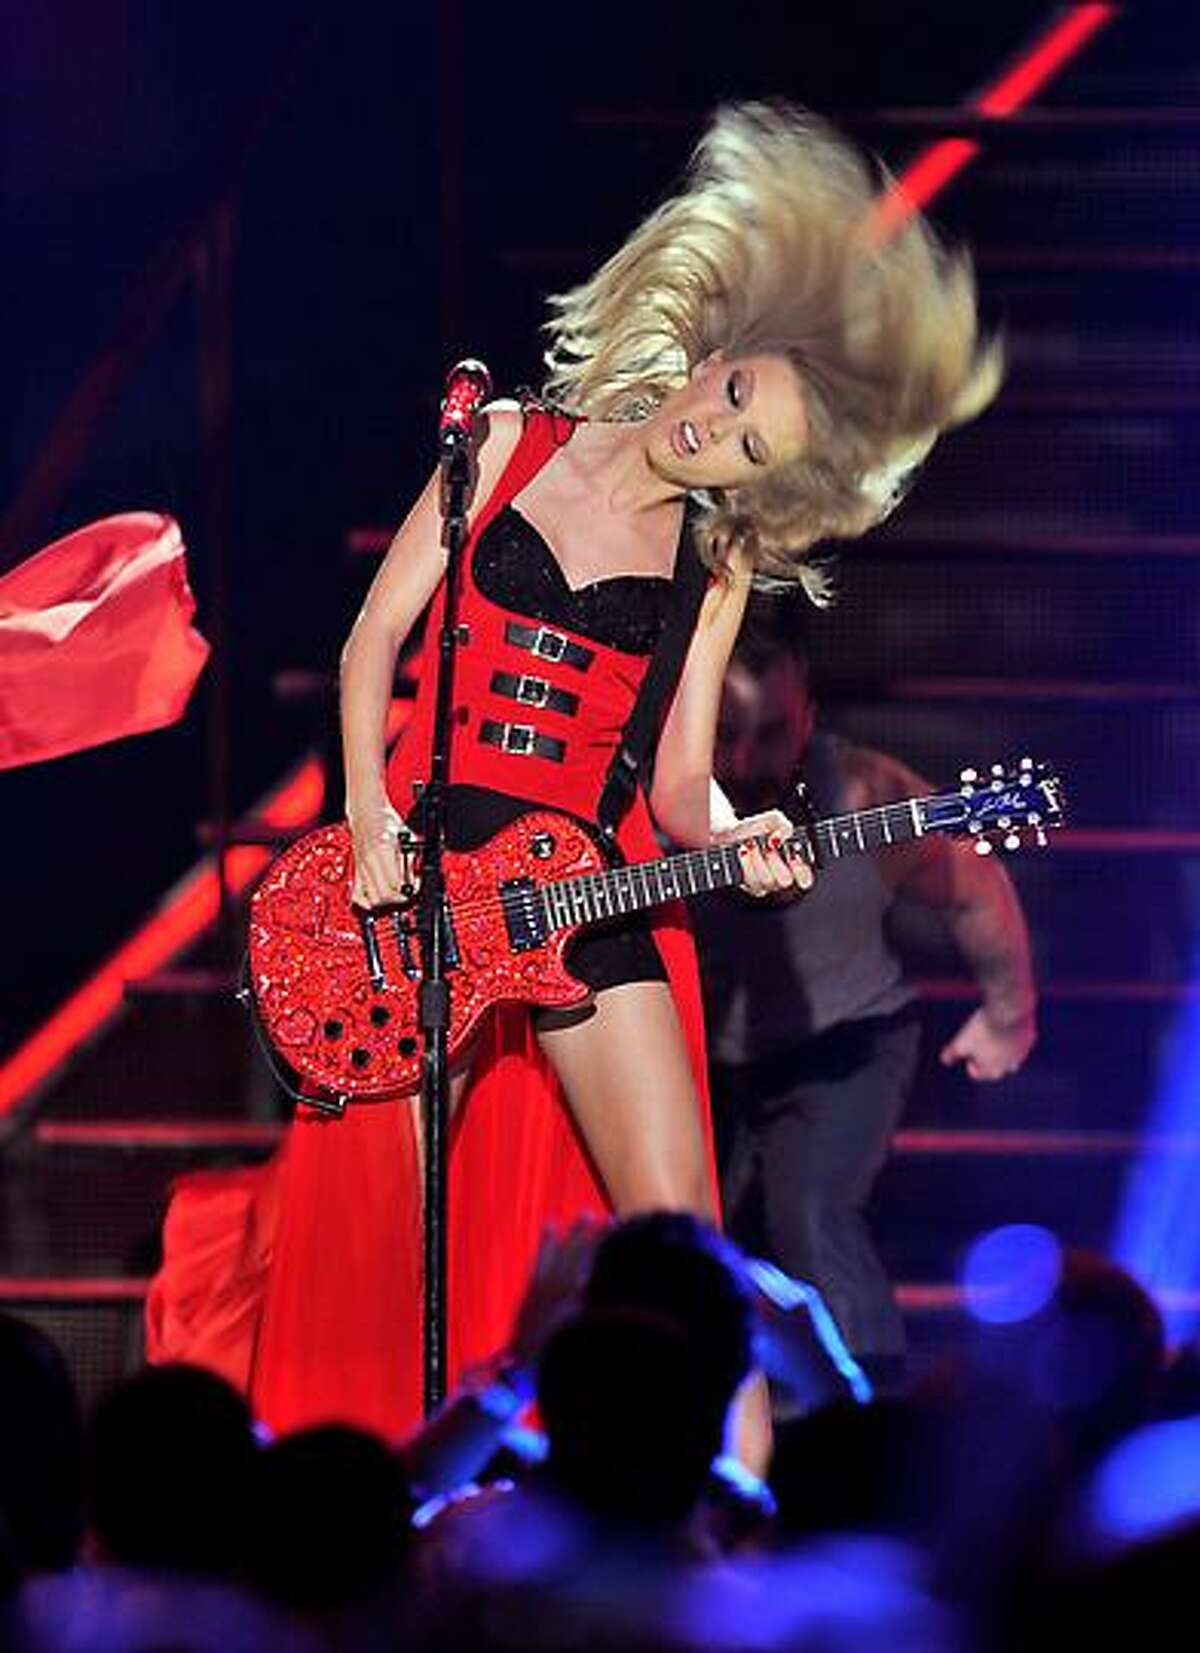 Taylor Swift performs at the 2013 CMT Music Awards at Bridgestone Arena on Wednesday, June 5, 2013, in Nashville, Tenn. (Photo by Donn Jones/Invision/AP)